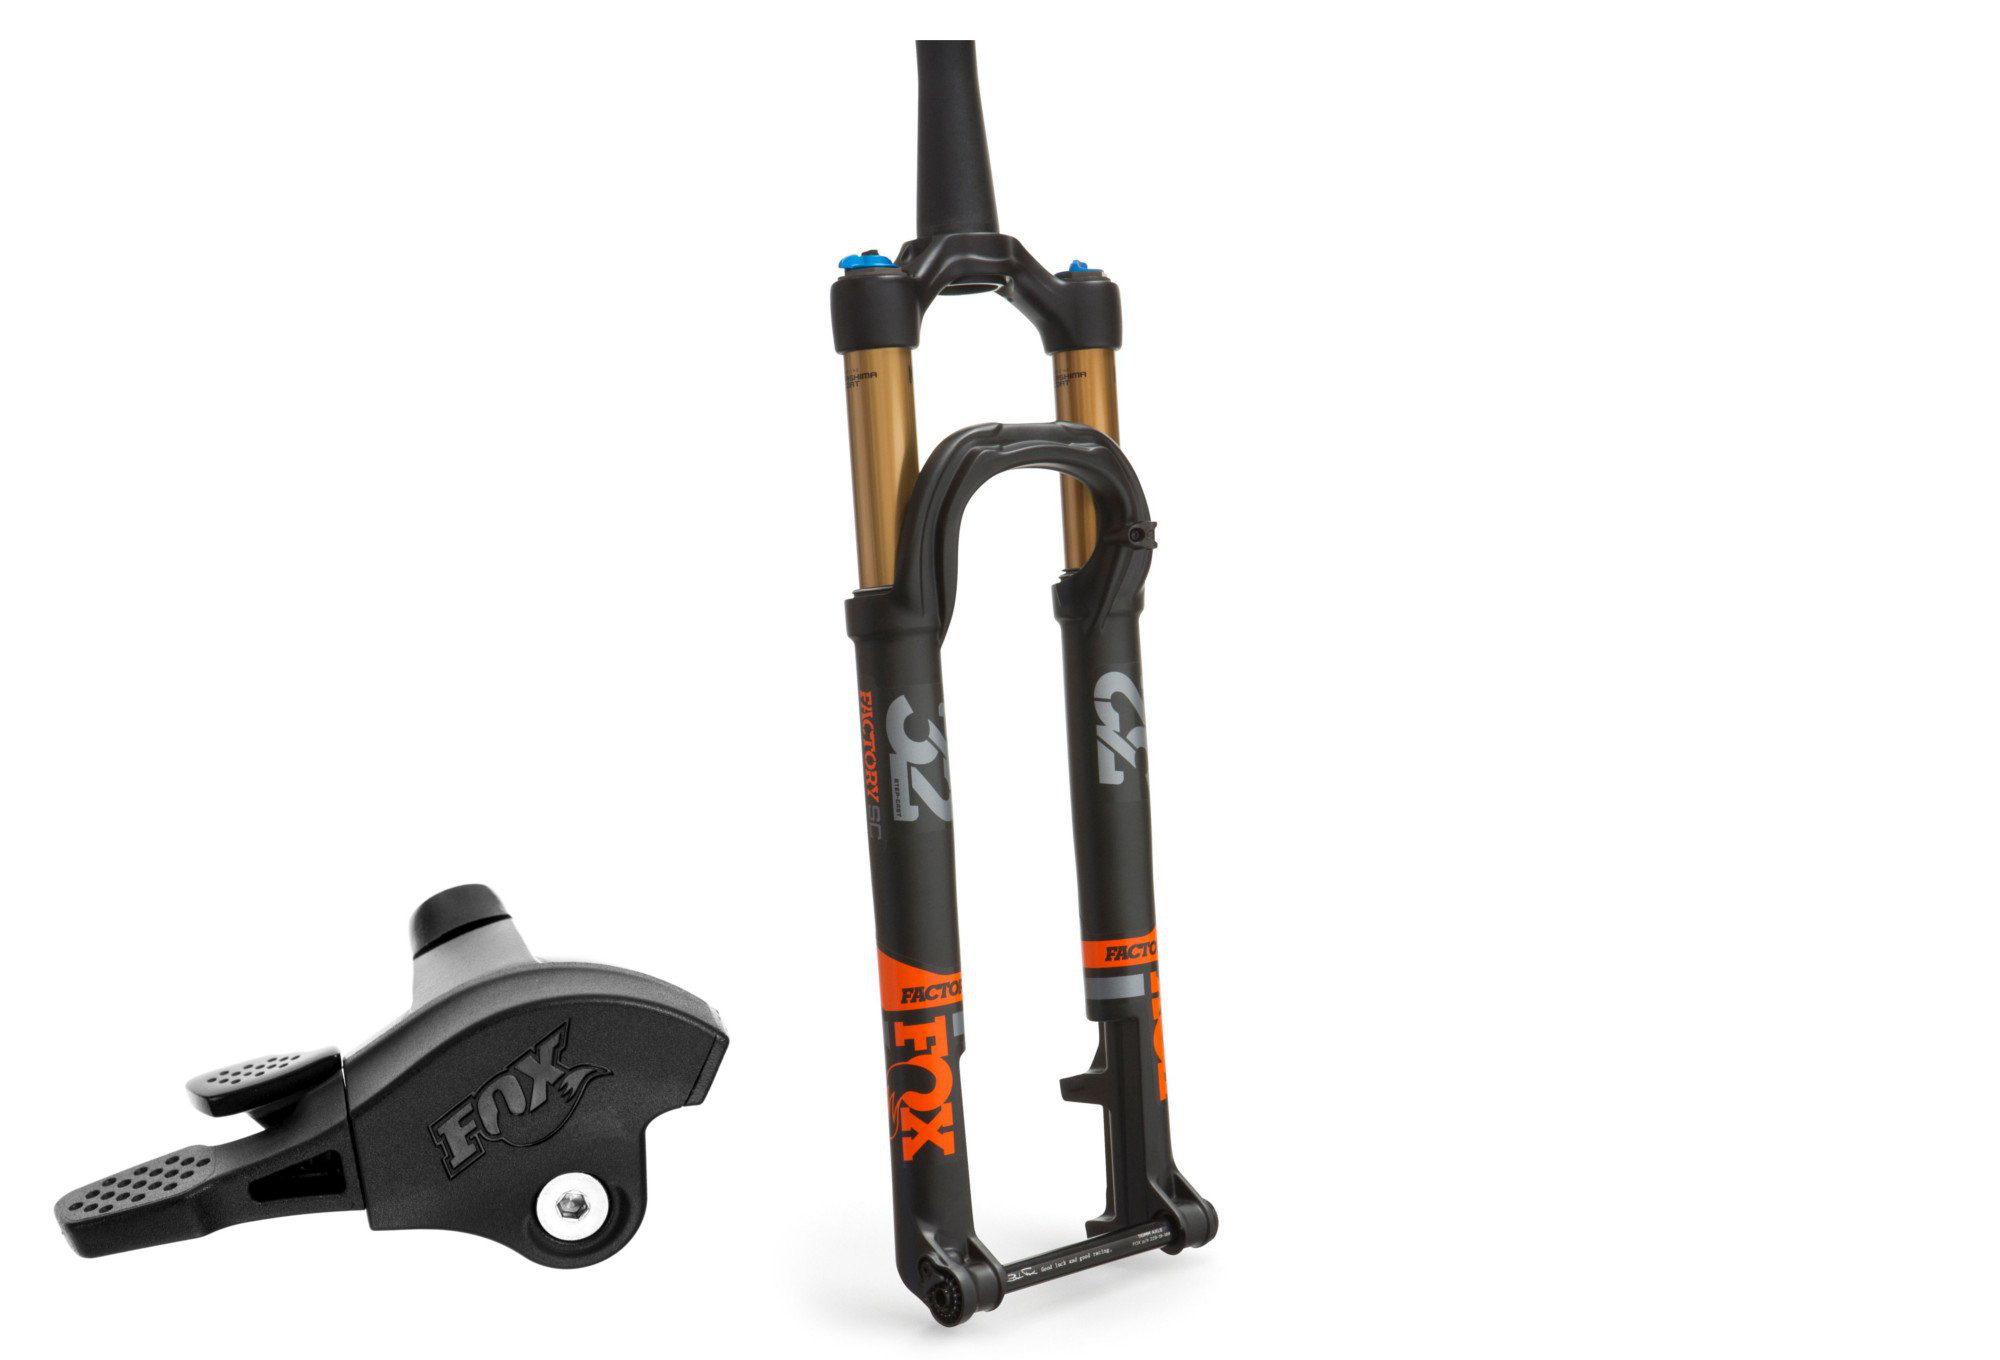 FOX RACING SHOX 2019 Fork 32 Float SC Factory FIT4 Remote 29'' Kabolt |  15x100mm | Offset 44mm | Black